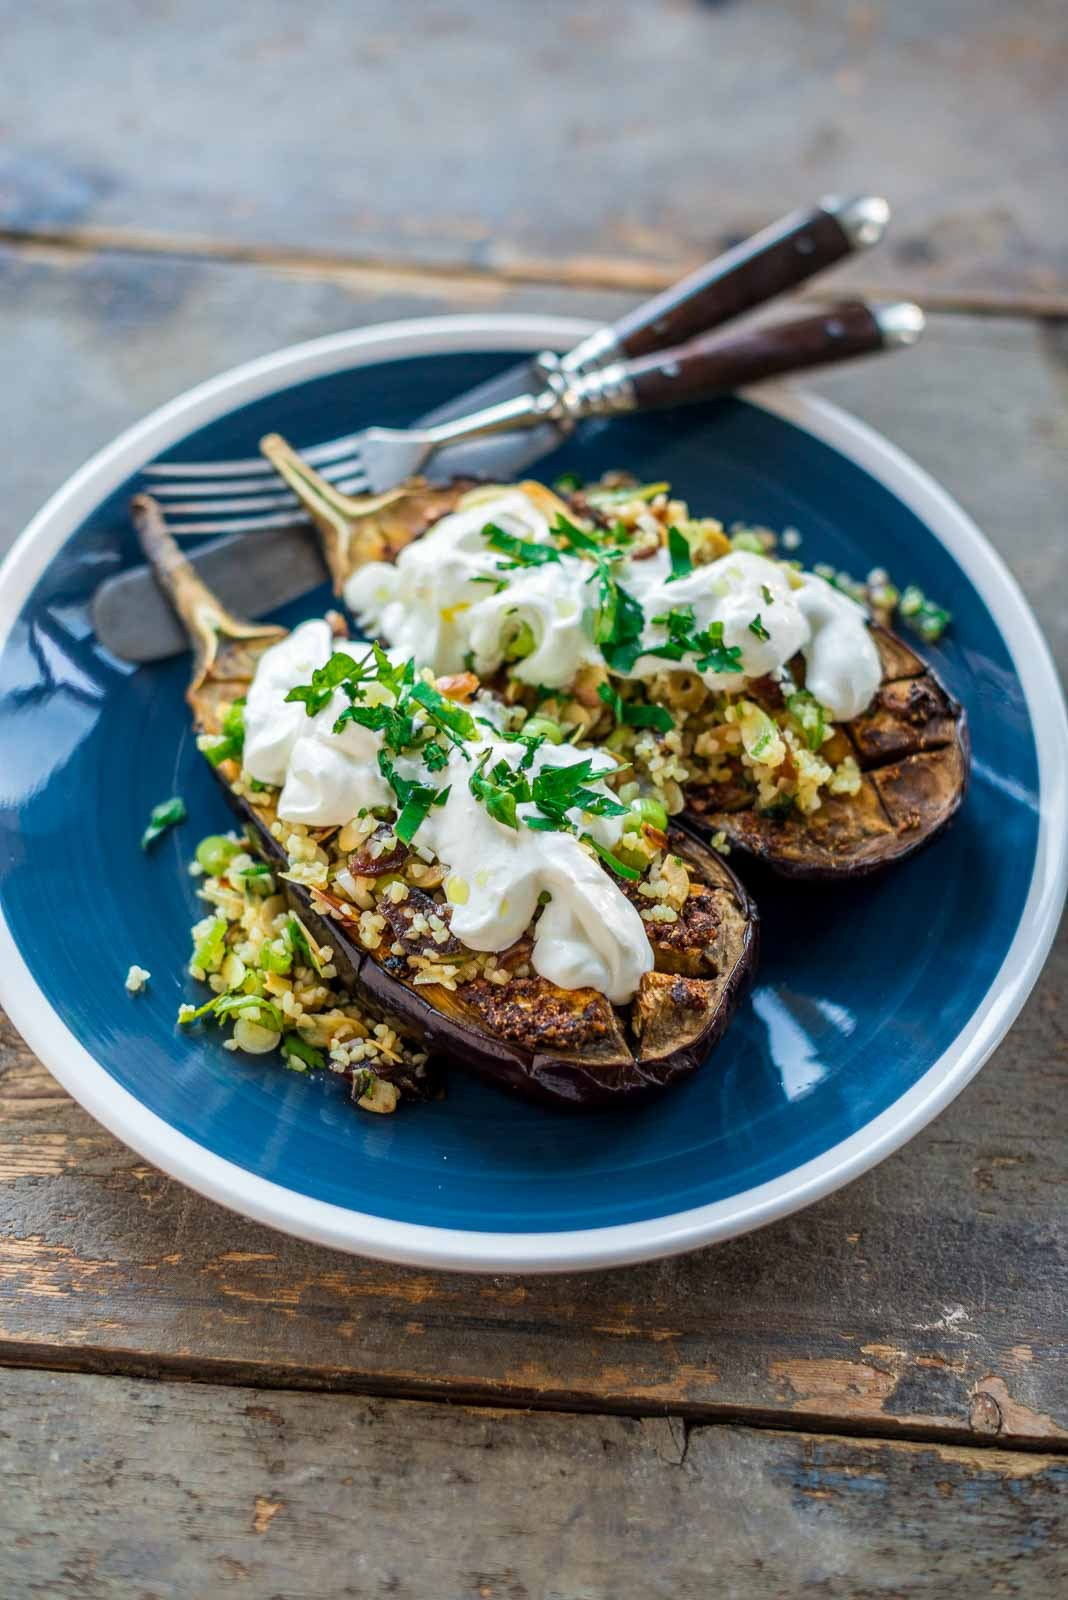 aubergines with chermoula, bulgur and yogurt. Another recipe from #Ottolenghi from his cookbook Jerusalem